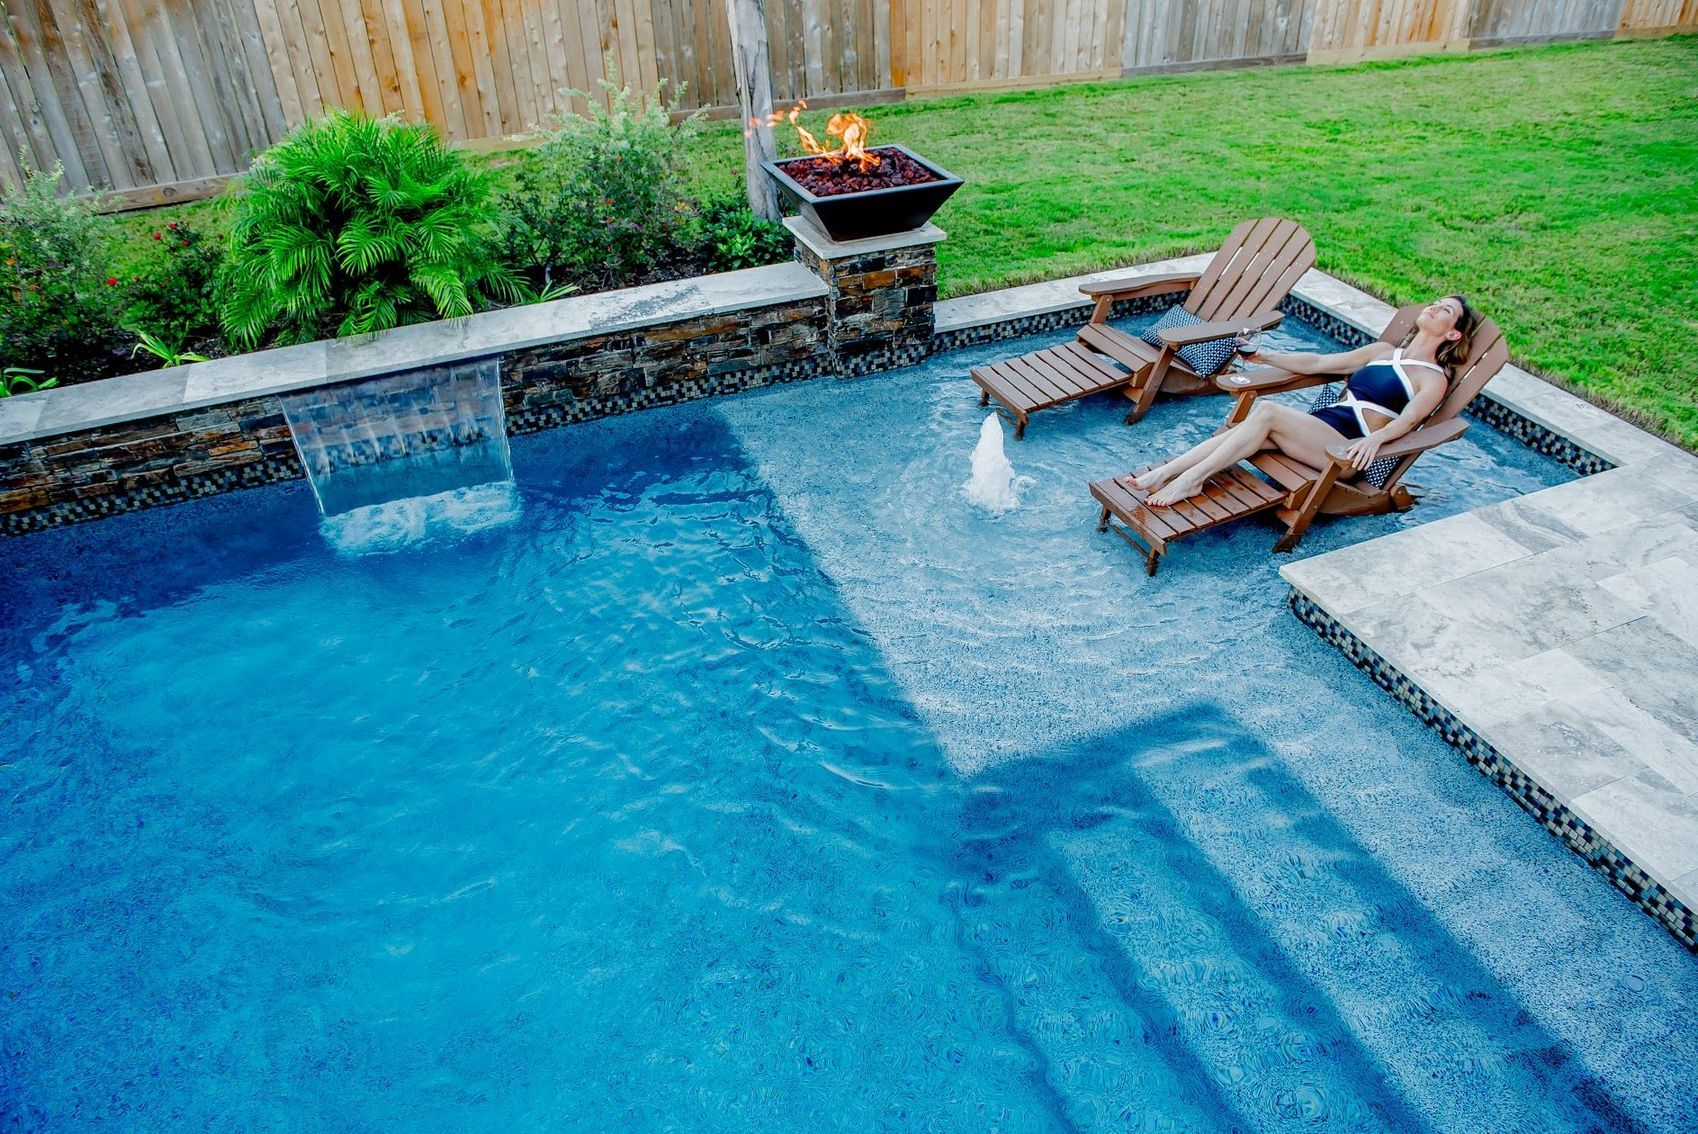 Pools Are The Best Method In Order To Add Value To Your Home And Provide You With A Recr Inground Pool Designs Swimming Pool Installation Custom Inground Pools